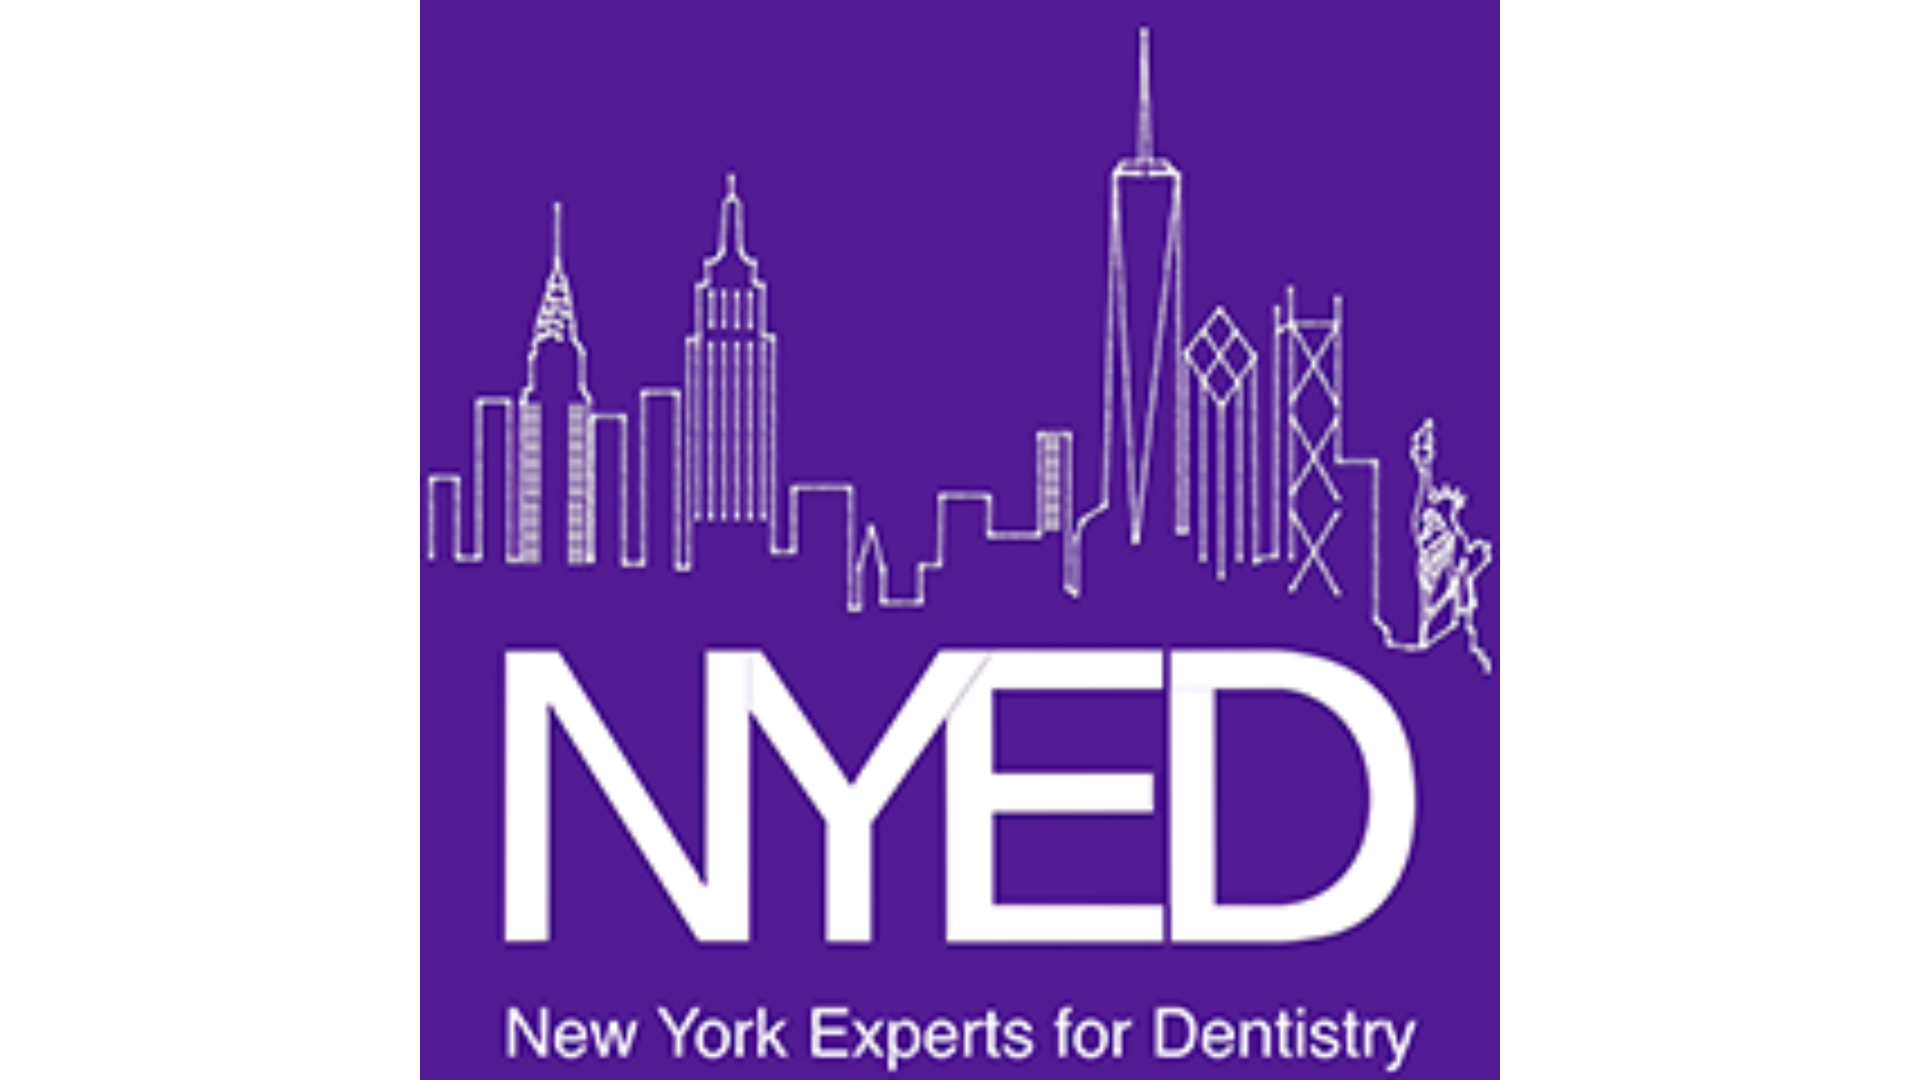 NYED (New York Experts for Dentistry)